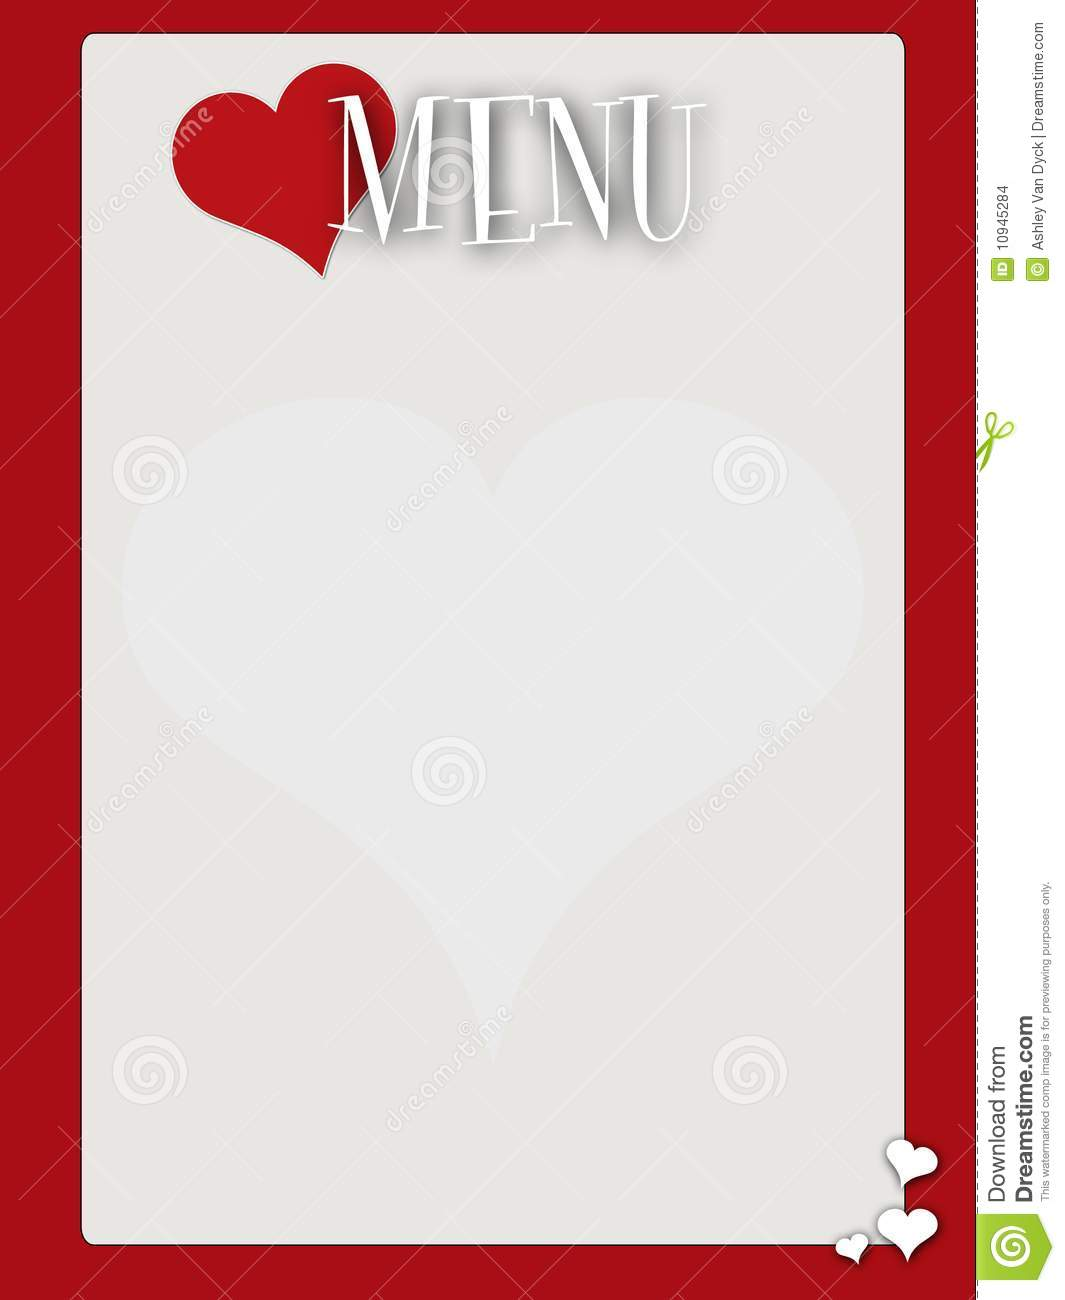 Retro Style Blank Valentines Menu Stock Images - Image: 10945284